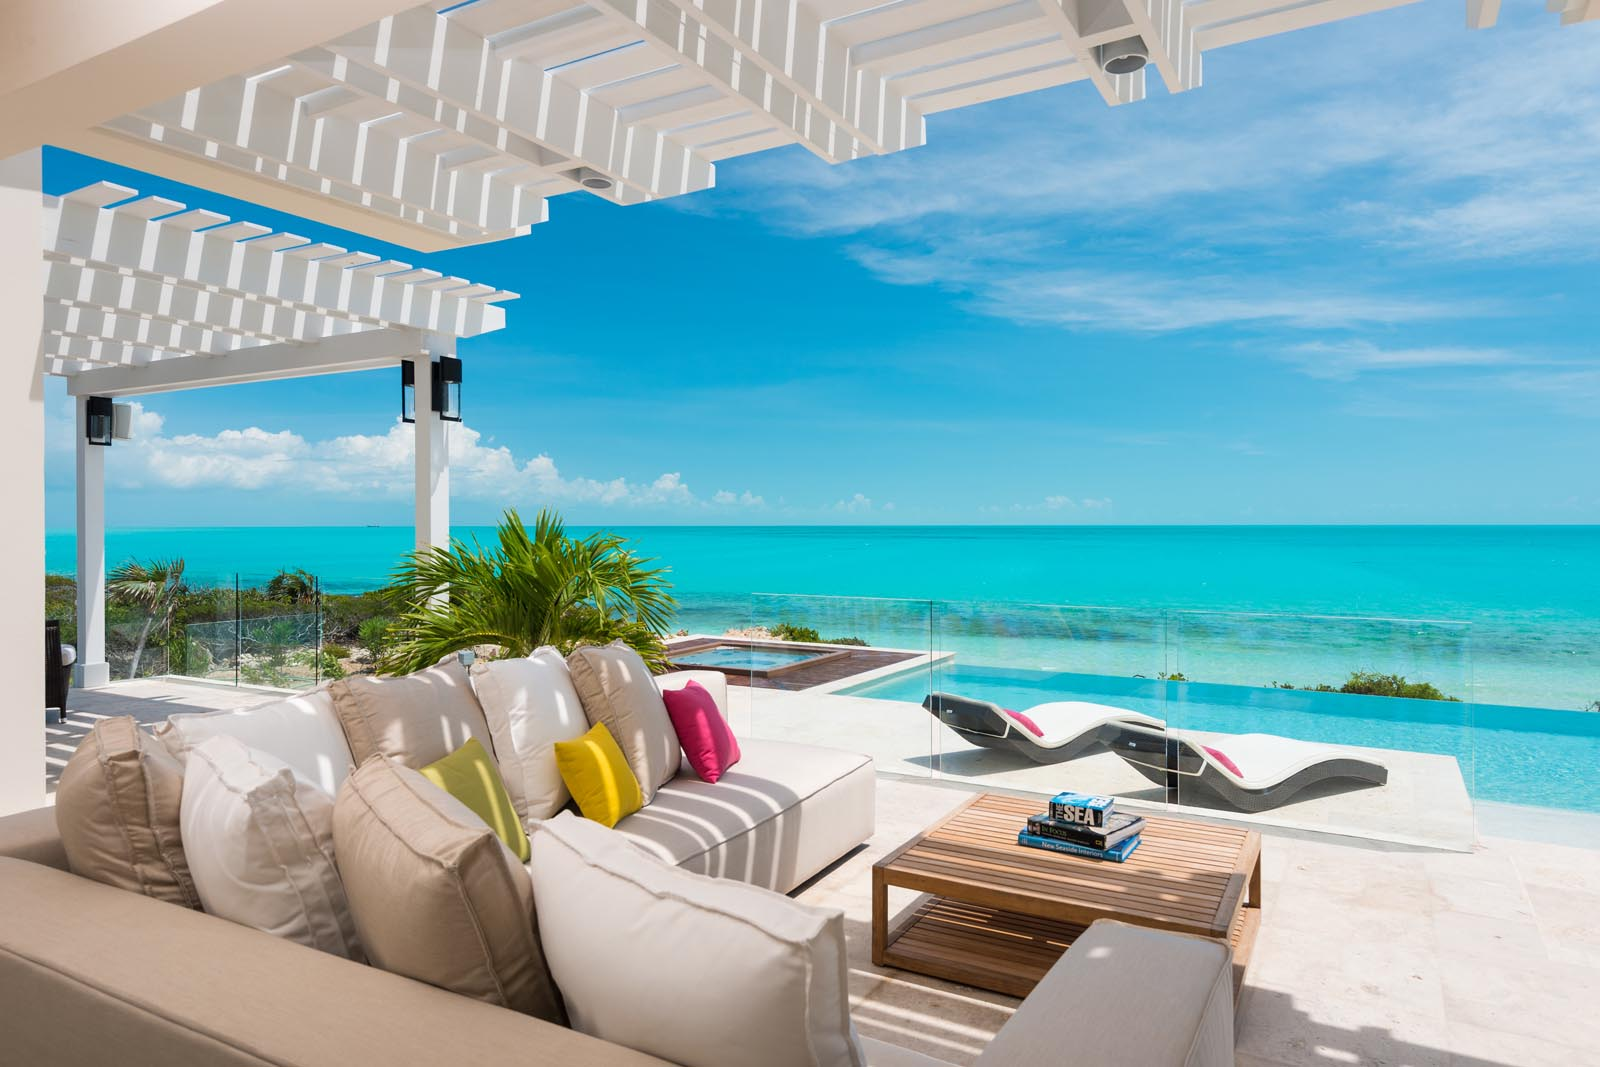 Beau Comfortable, Contemporary Furnishings For Outdoor Caribbean Living At This  Turks And Caicos Vacation Villa Rental ...